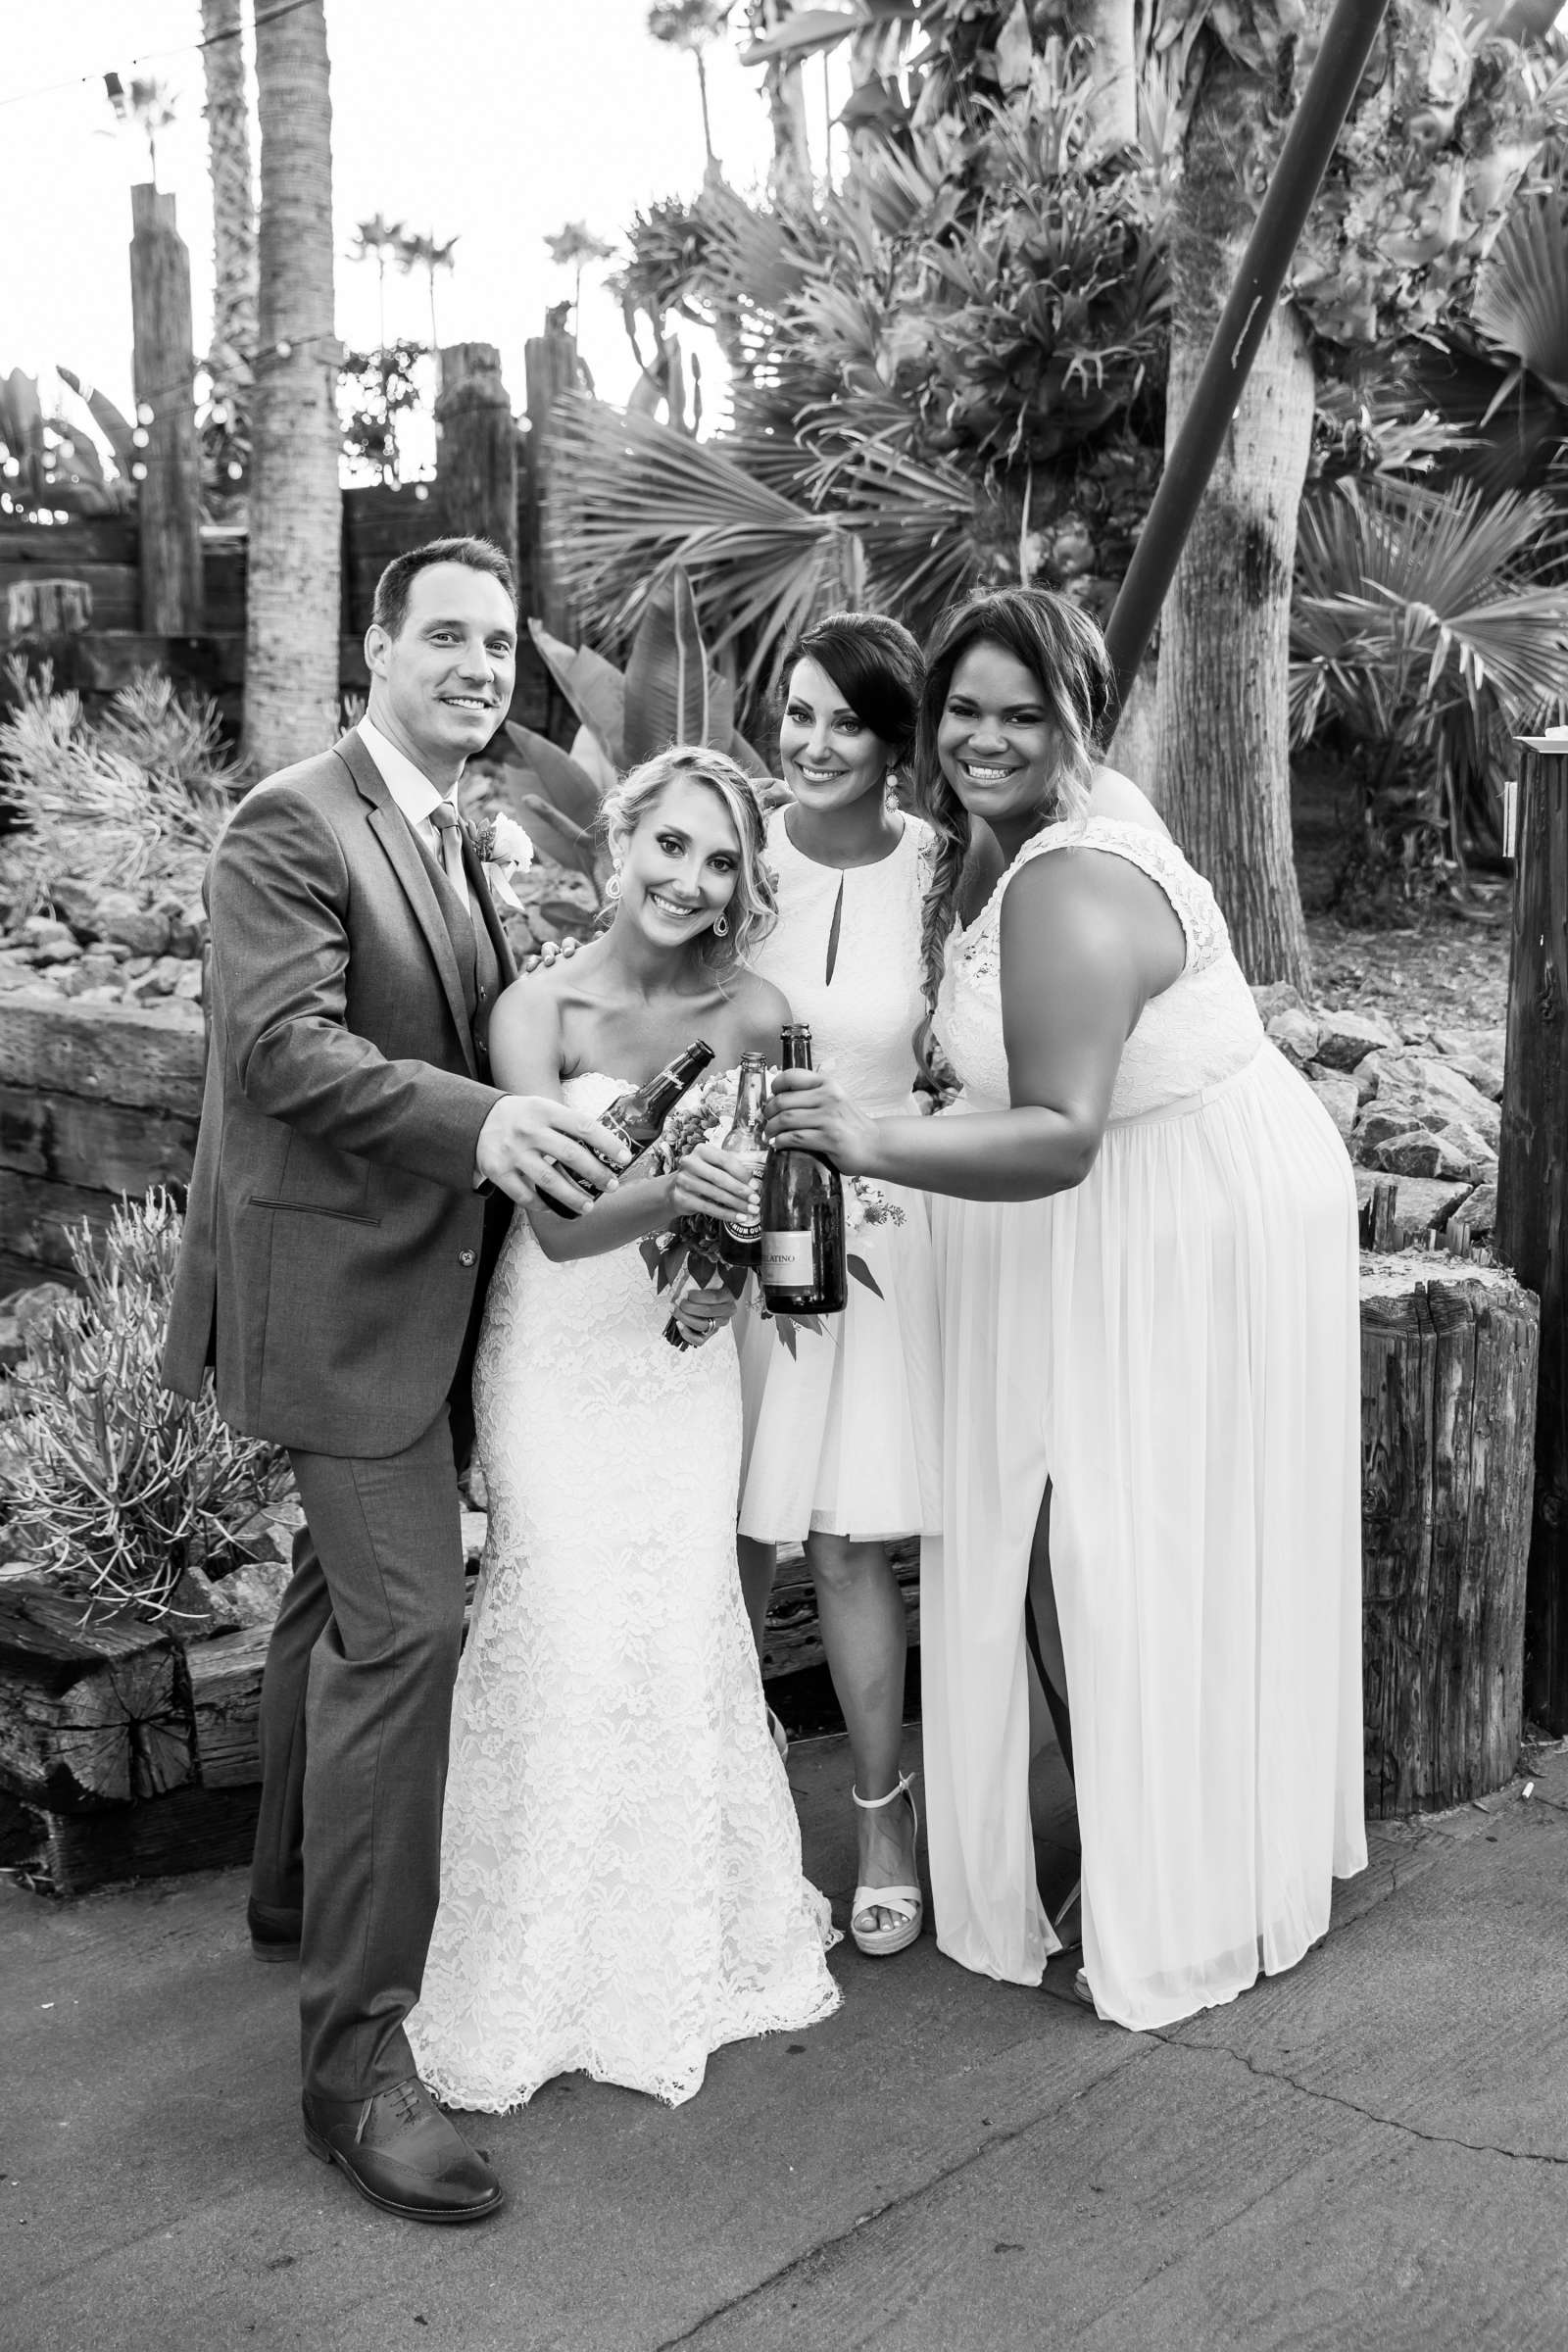 Paradise Point Wedding, Kimberly and Michael Wedding Photo #63 by True Photography